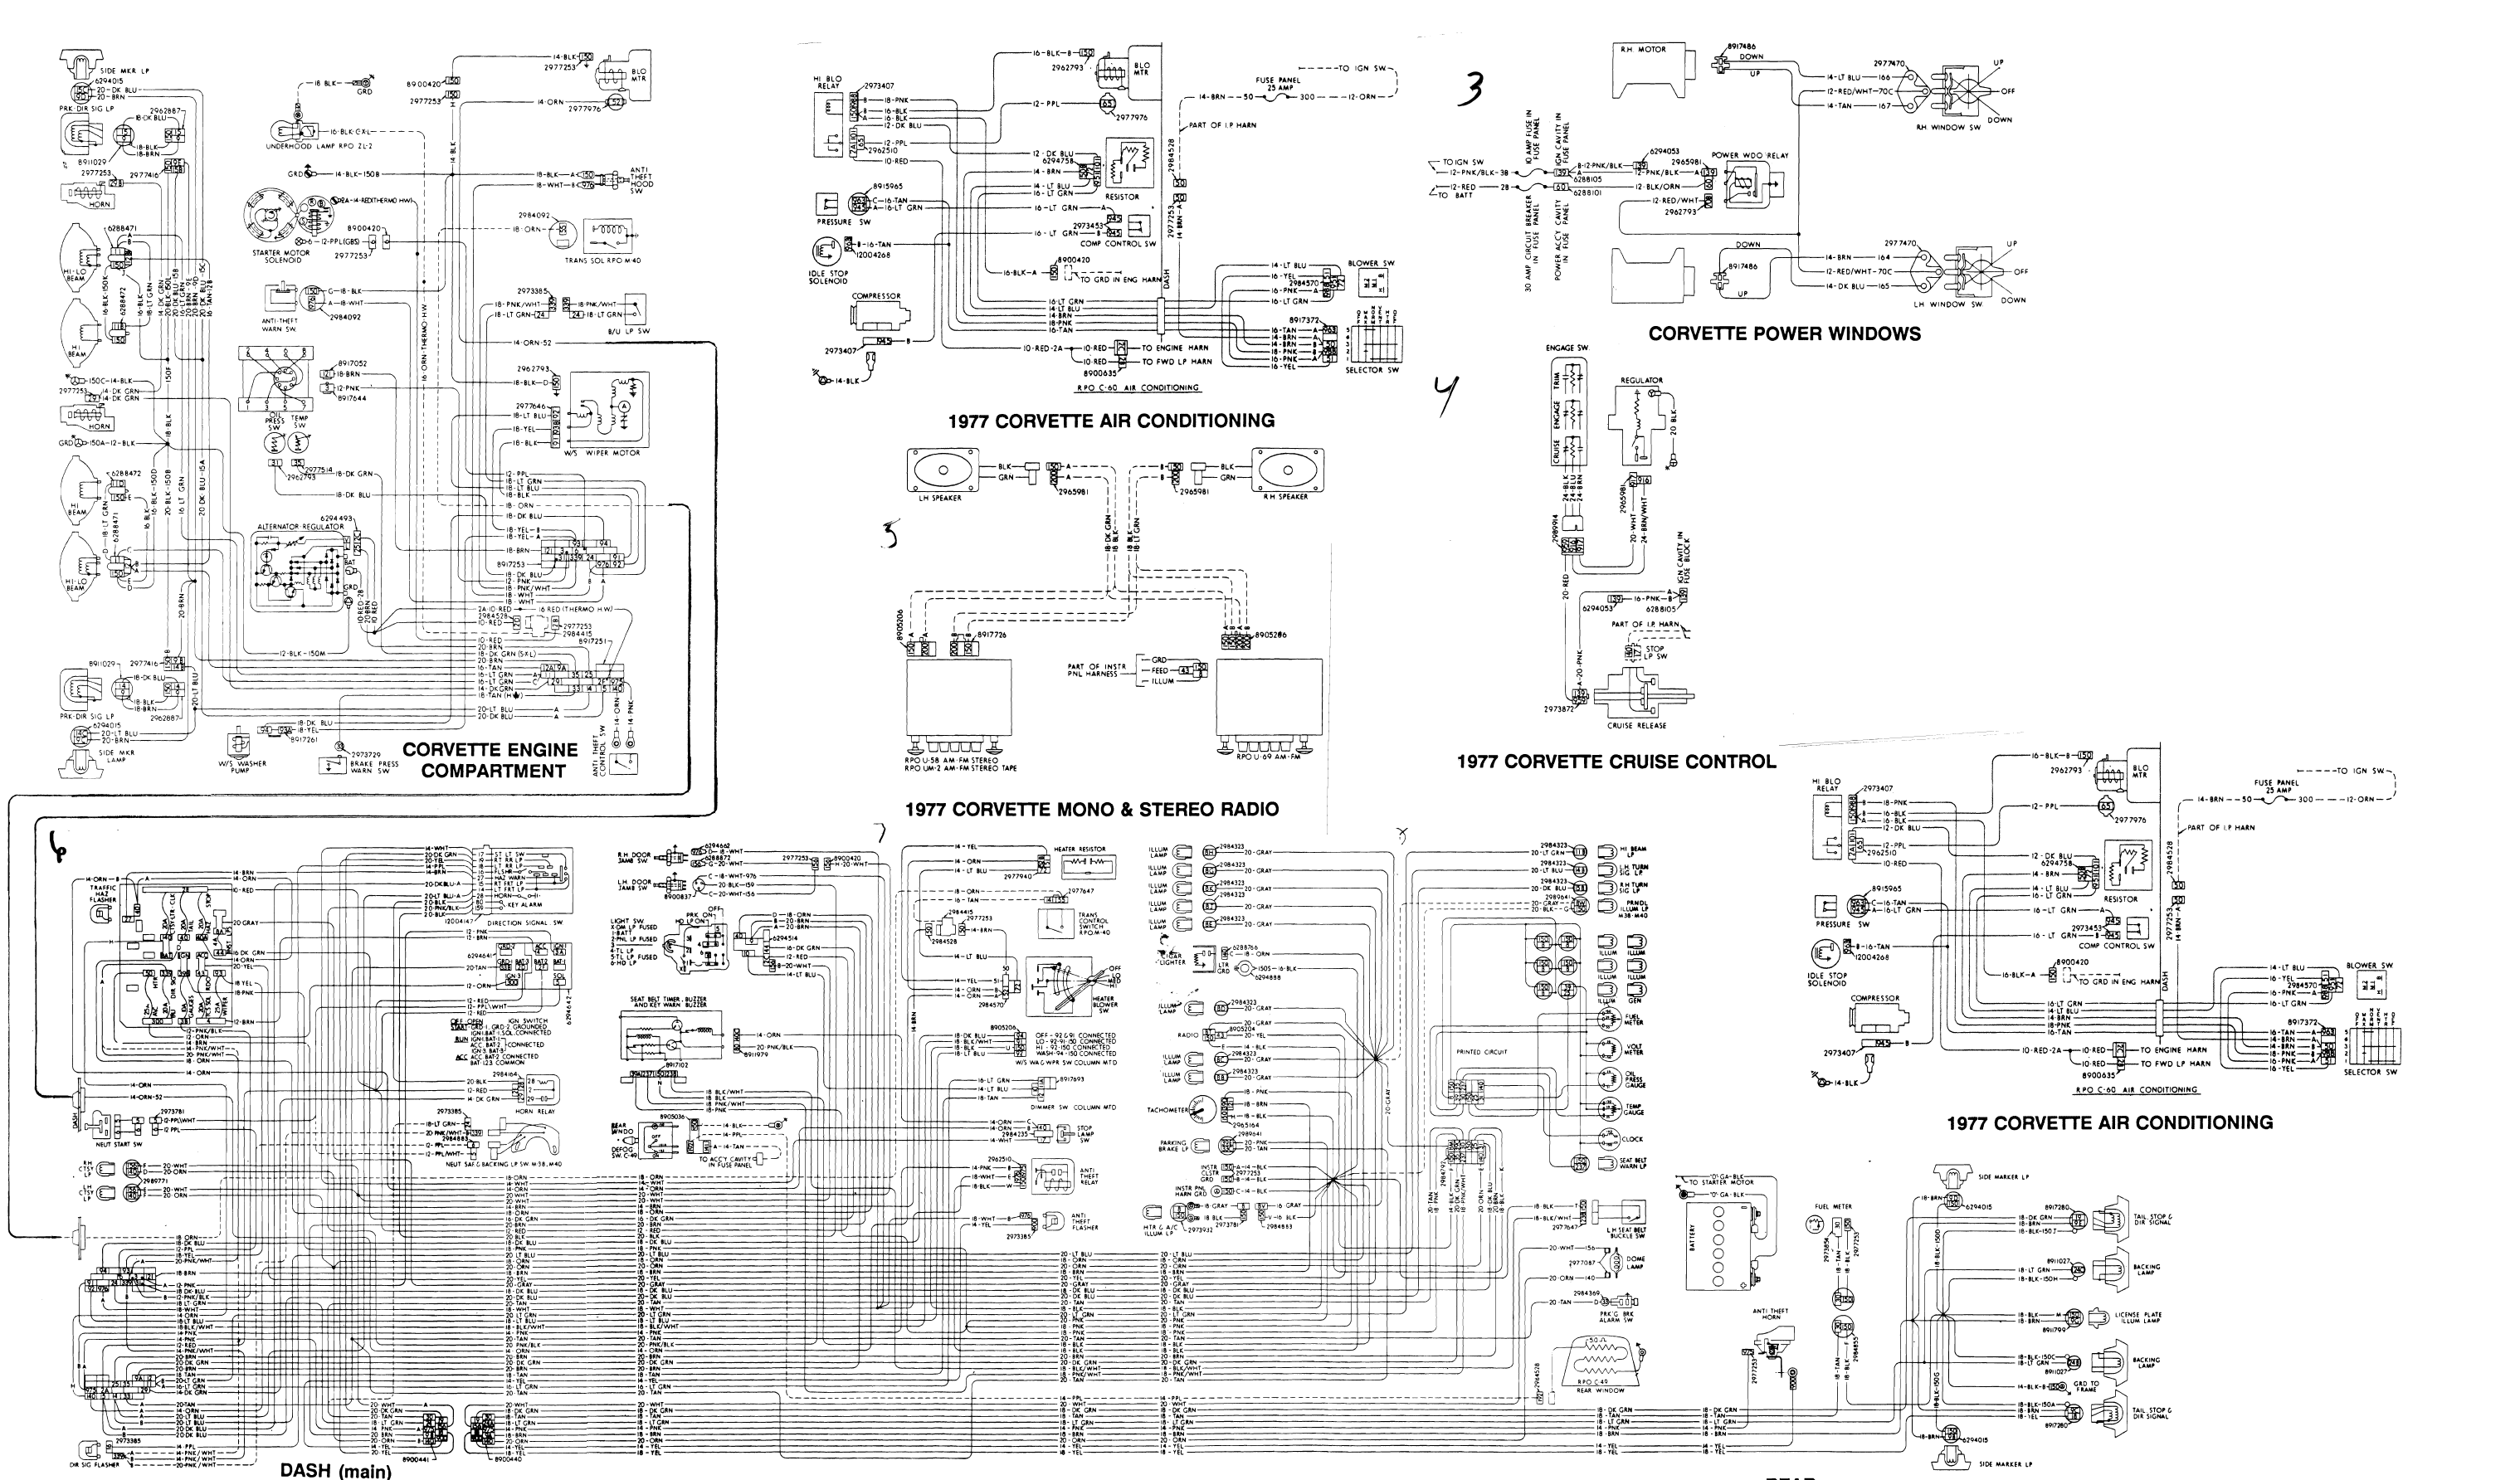 Mack Wiring Diagram Custom Project Gu713 1977 Corvette Dash 33 Cv713